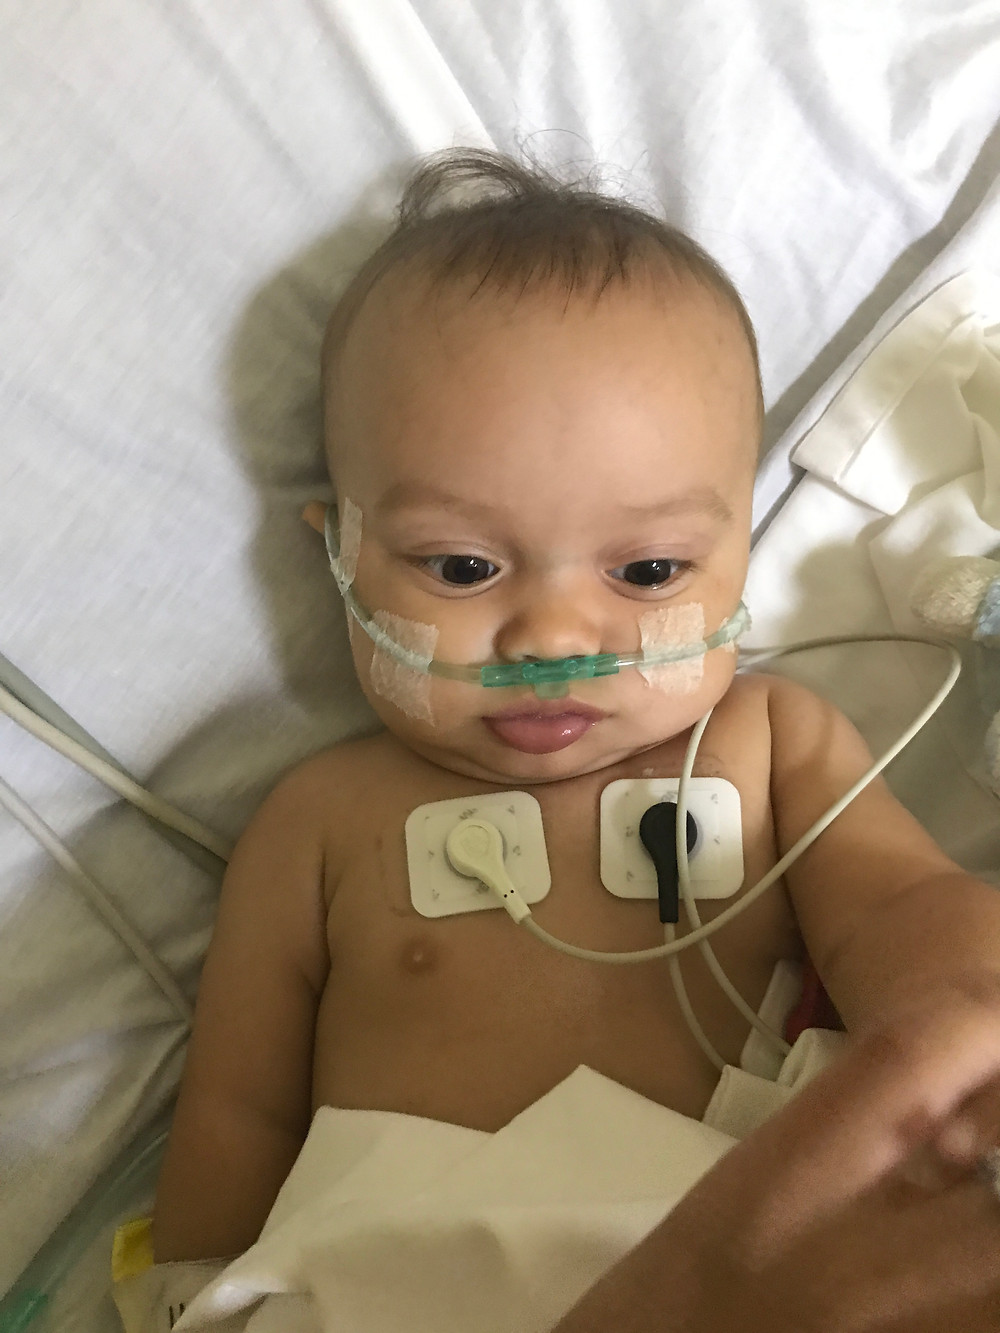 Judah with EKG and oxygen in NICU bed.